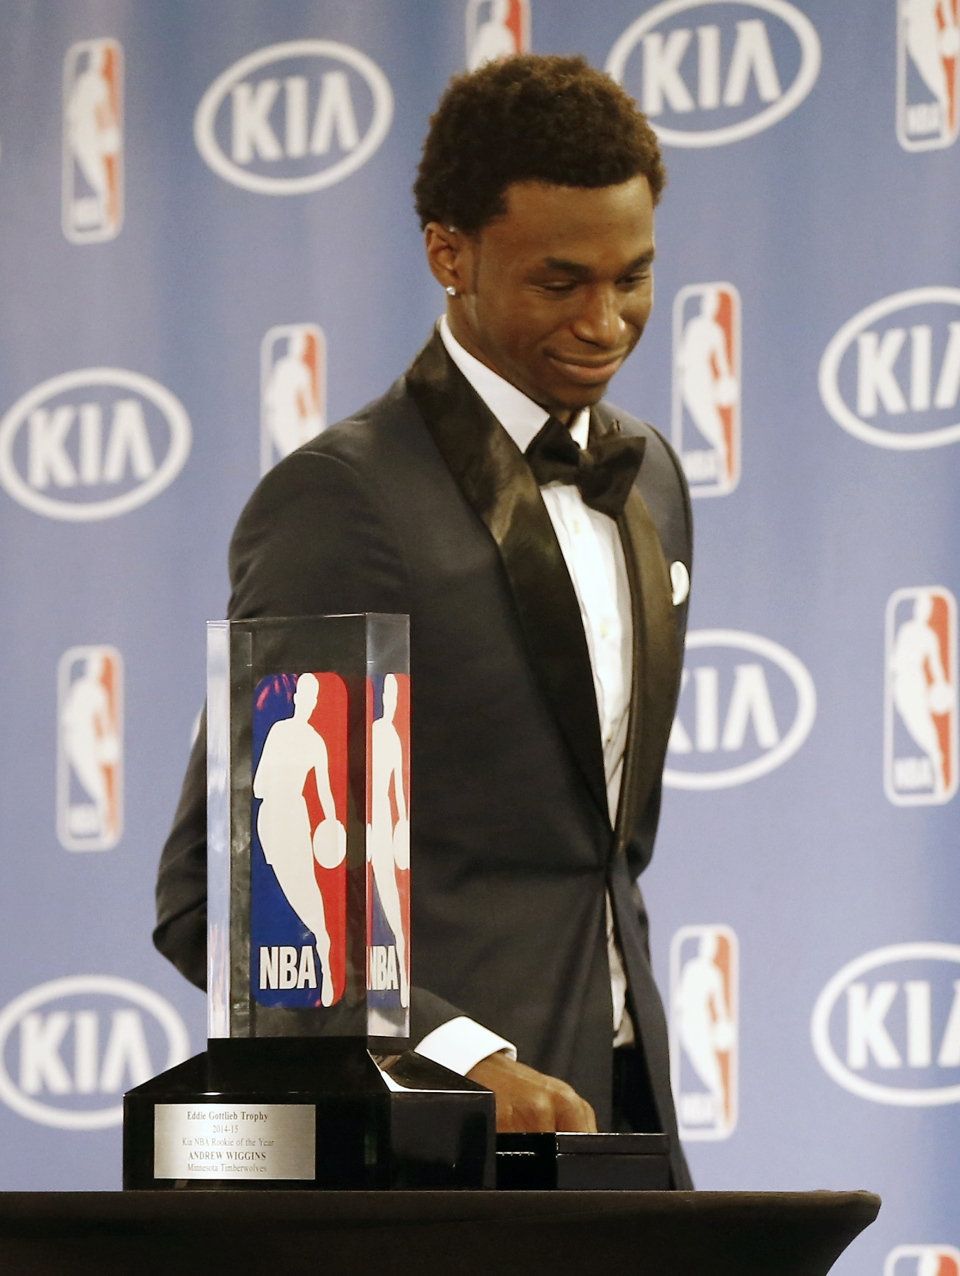 Minnesota Timberwolves' Andrew Wiggins smiles as he walks past his trophy during a news announcing he was the NBA basketball Rookie of the Year, in Minneapolis, Thursday, April 30, 2015. (AP / Jim Mone)